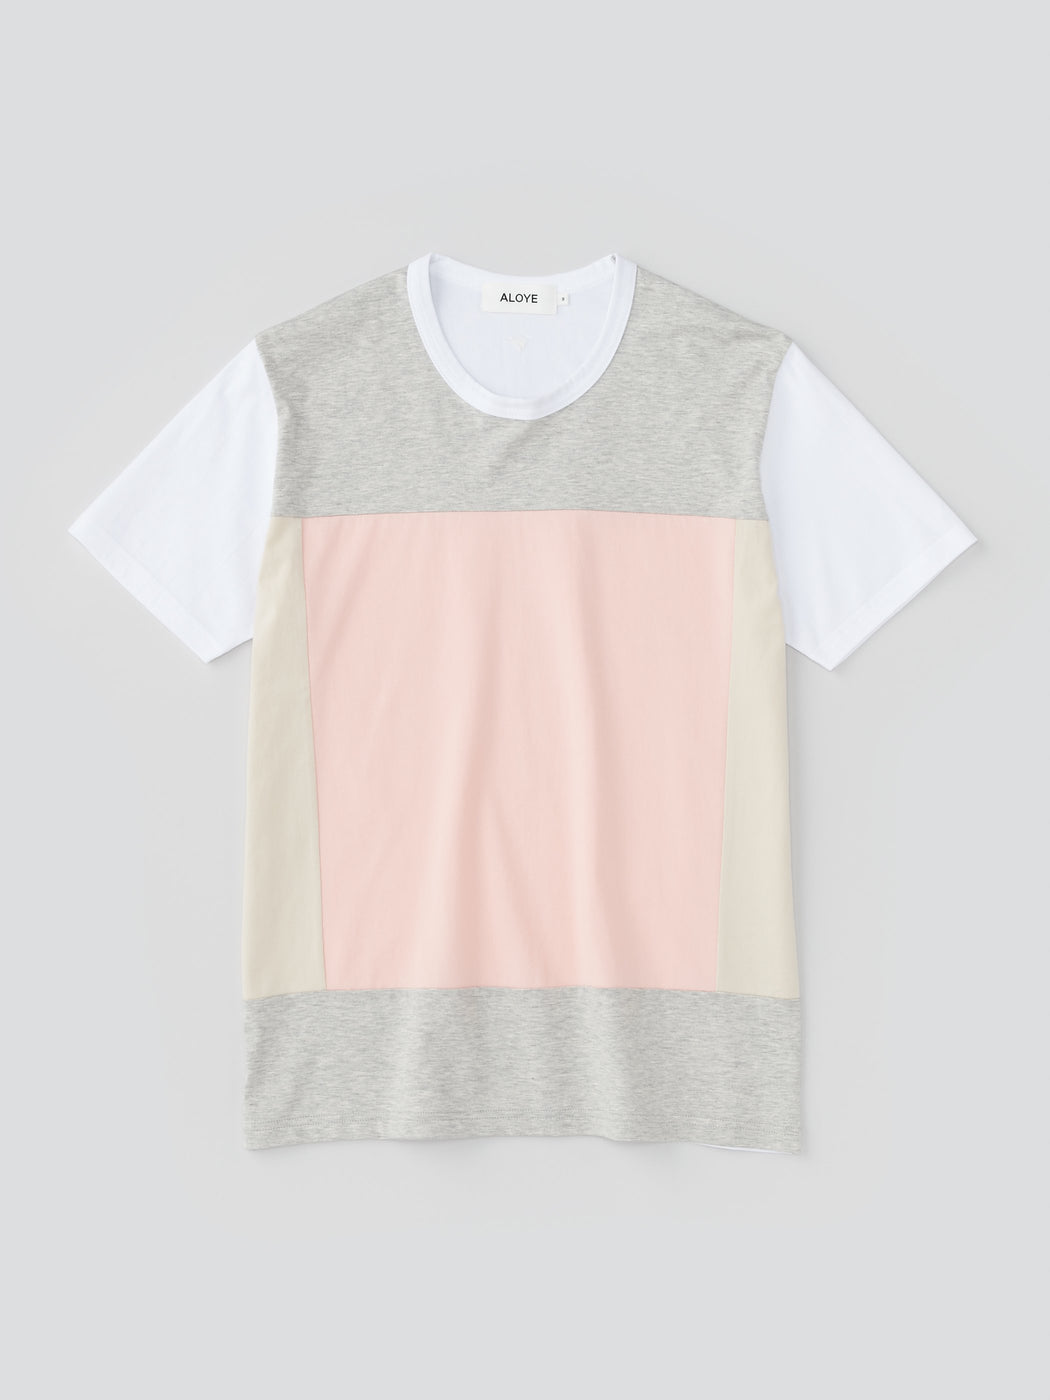 ALOYE Color Blocks Men's Short Sleeve T-shirt Heather Gray-pink-Beige